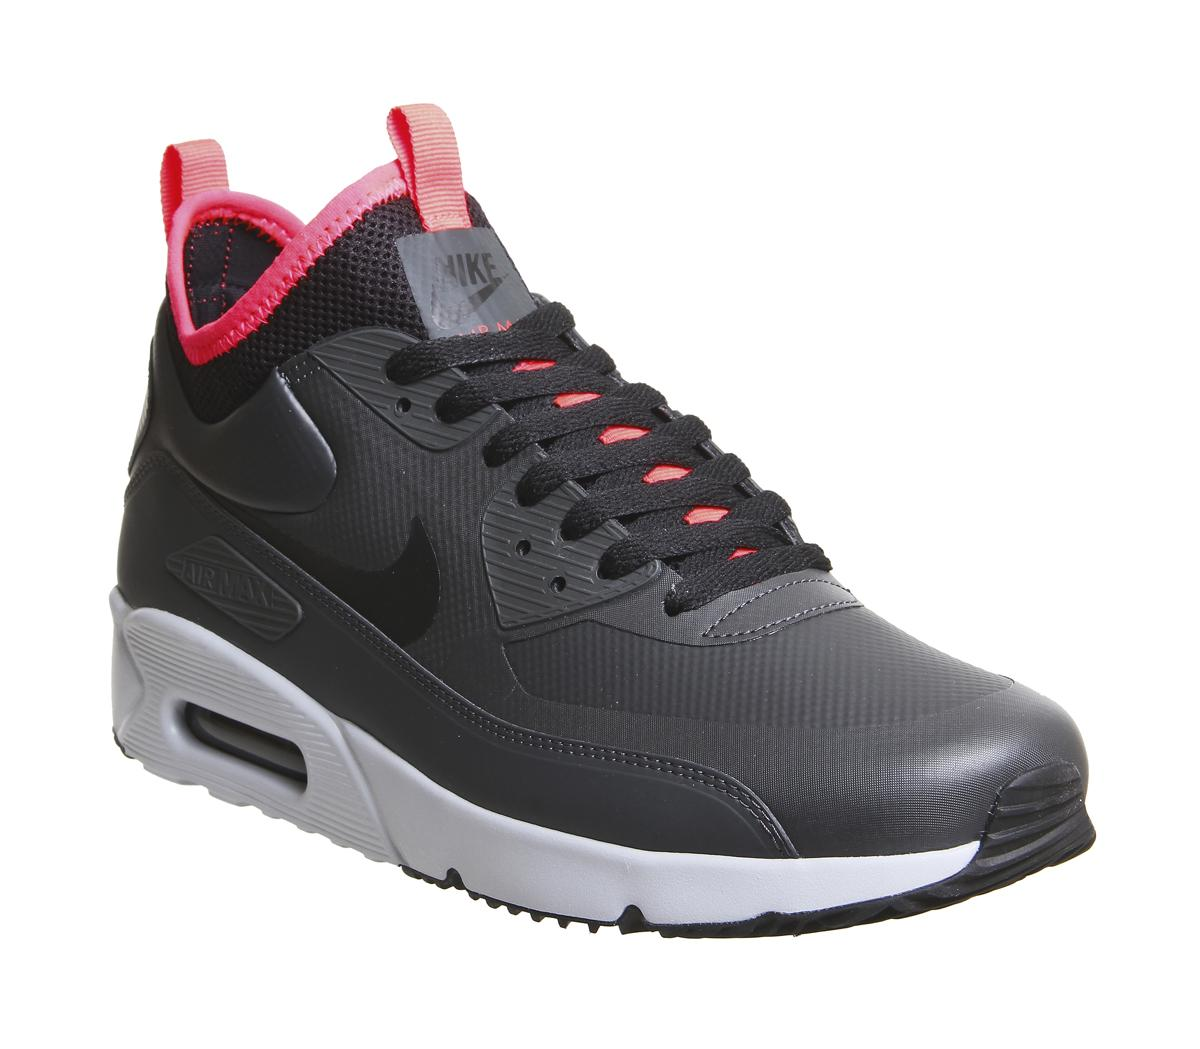 e0c322ed225 Nike Air Max 90 Mid Wntr Trainers in Black for Men - Lyst